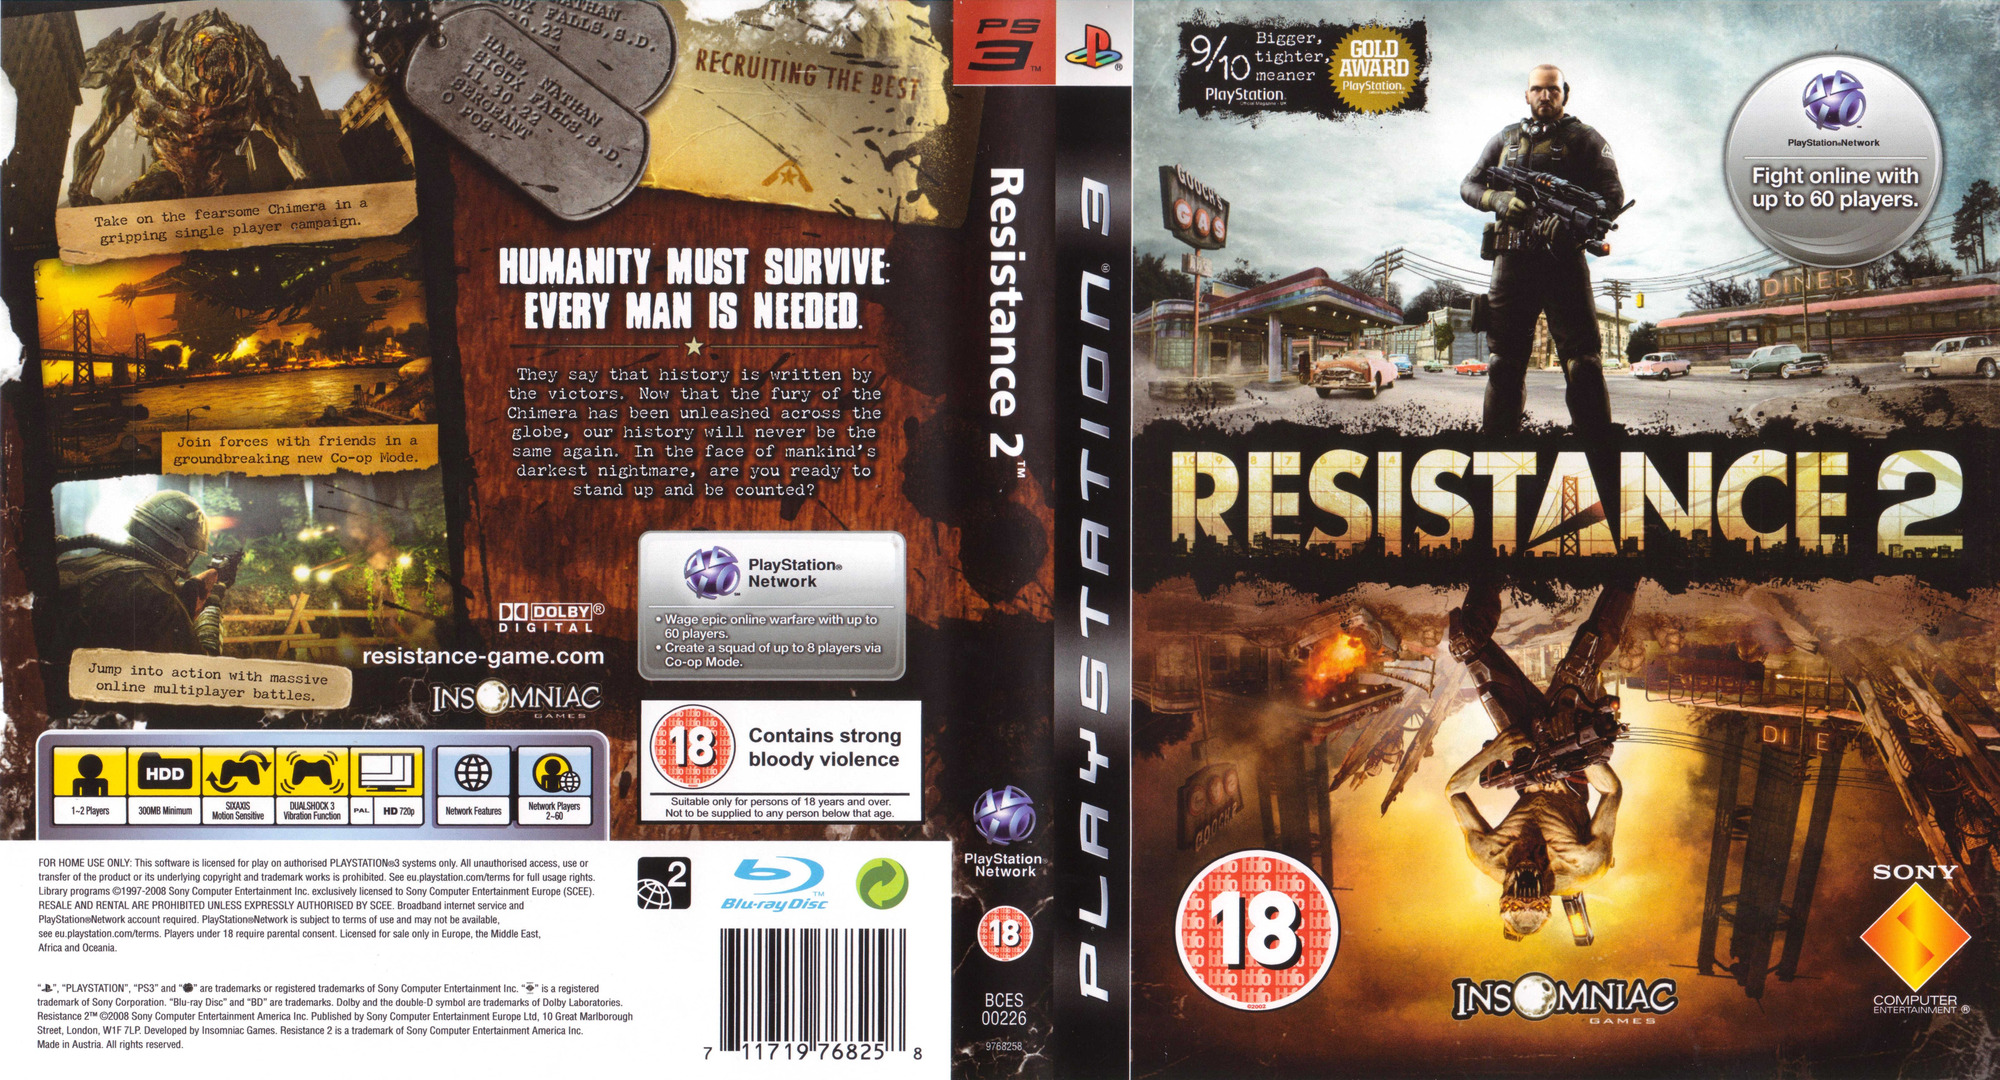 Resistance 2 PS3 coverfullHQ (BCES00226)